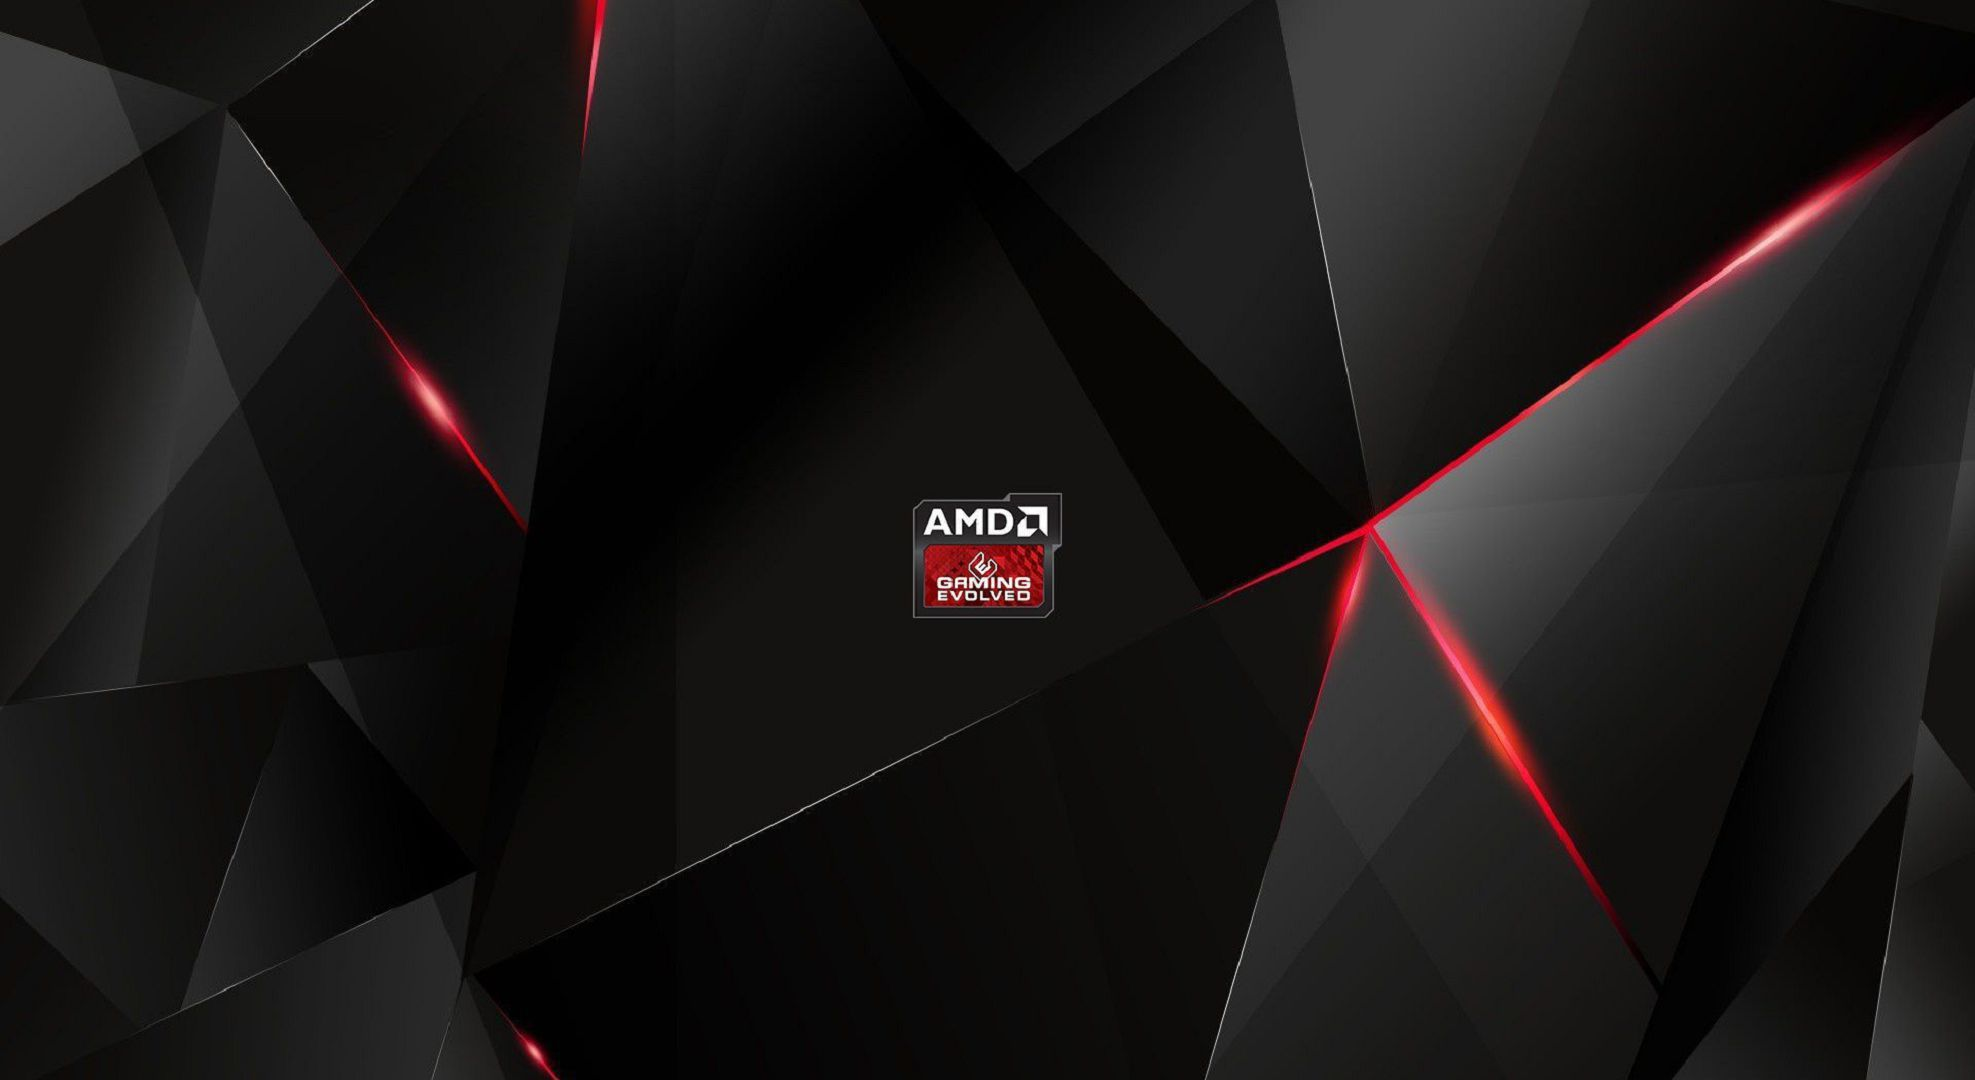 Amd Gaming Evolved Wallpaper Pack